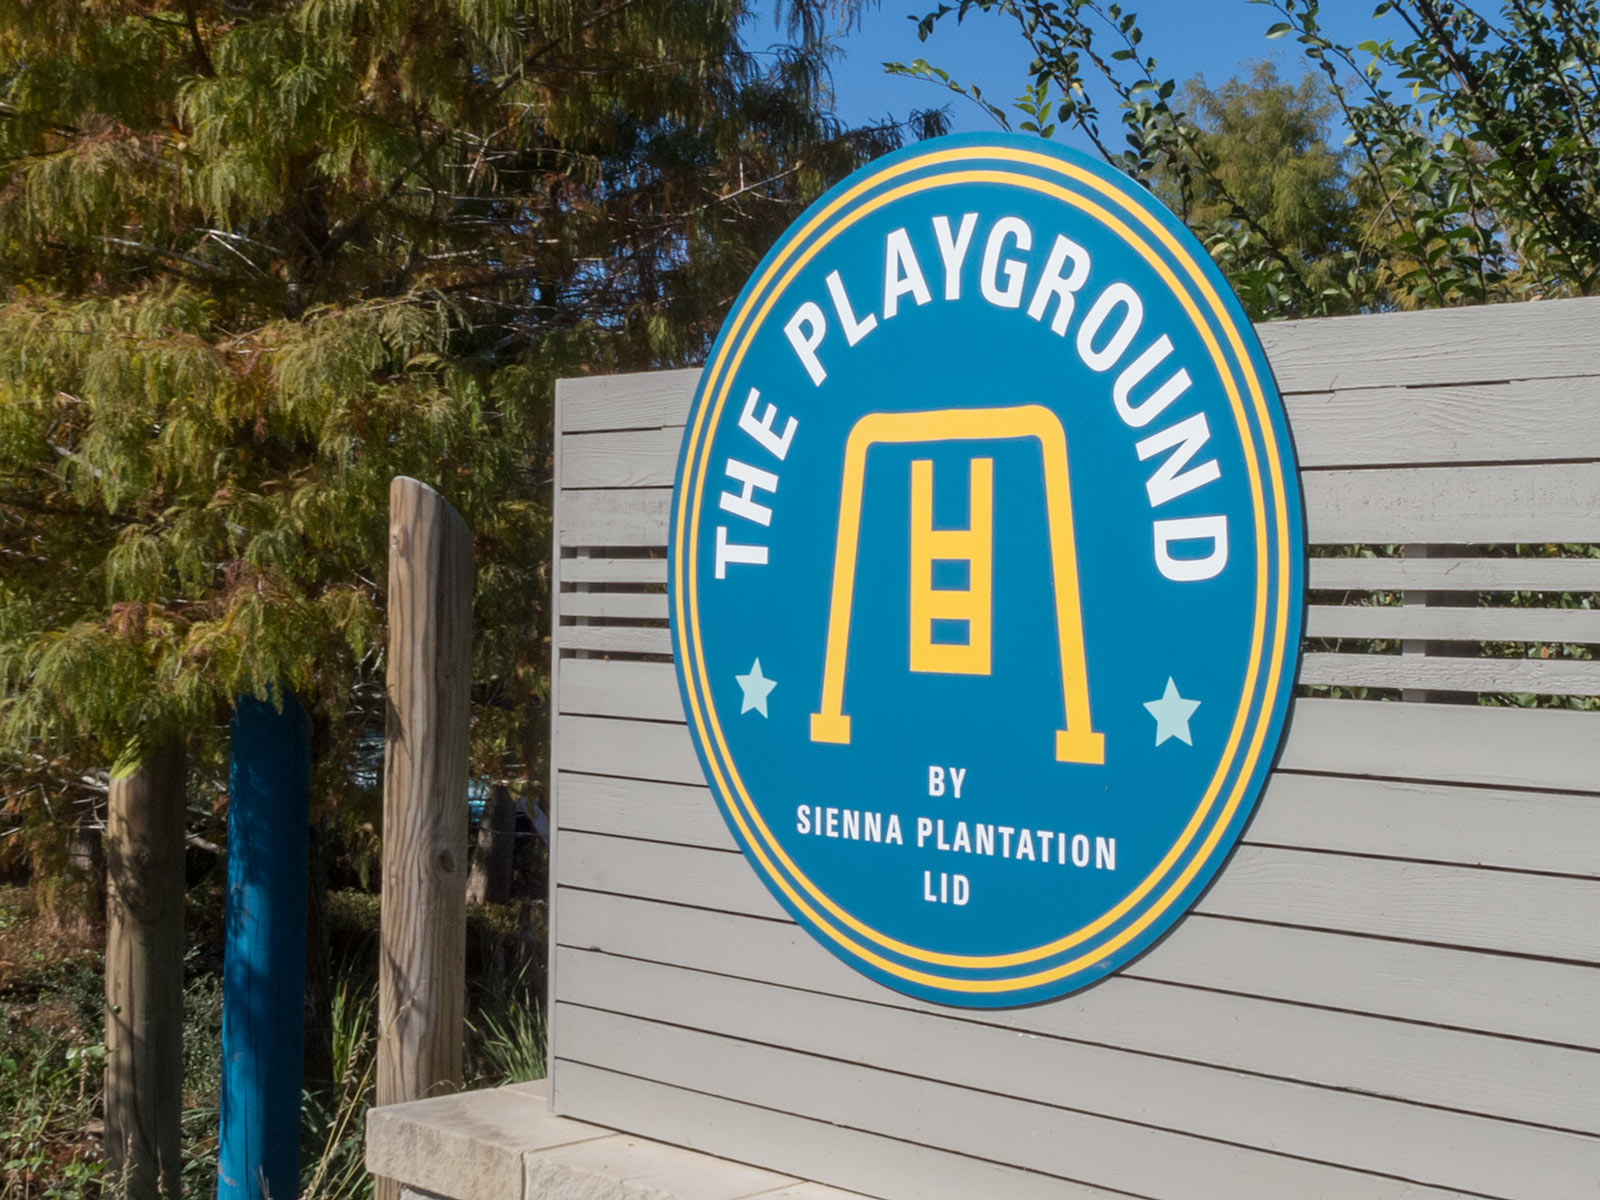 Close up of large-scale, dimensional logo with masked and painted graphics for Sienna Plantation playground monument.